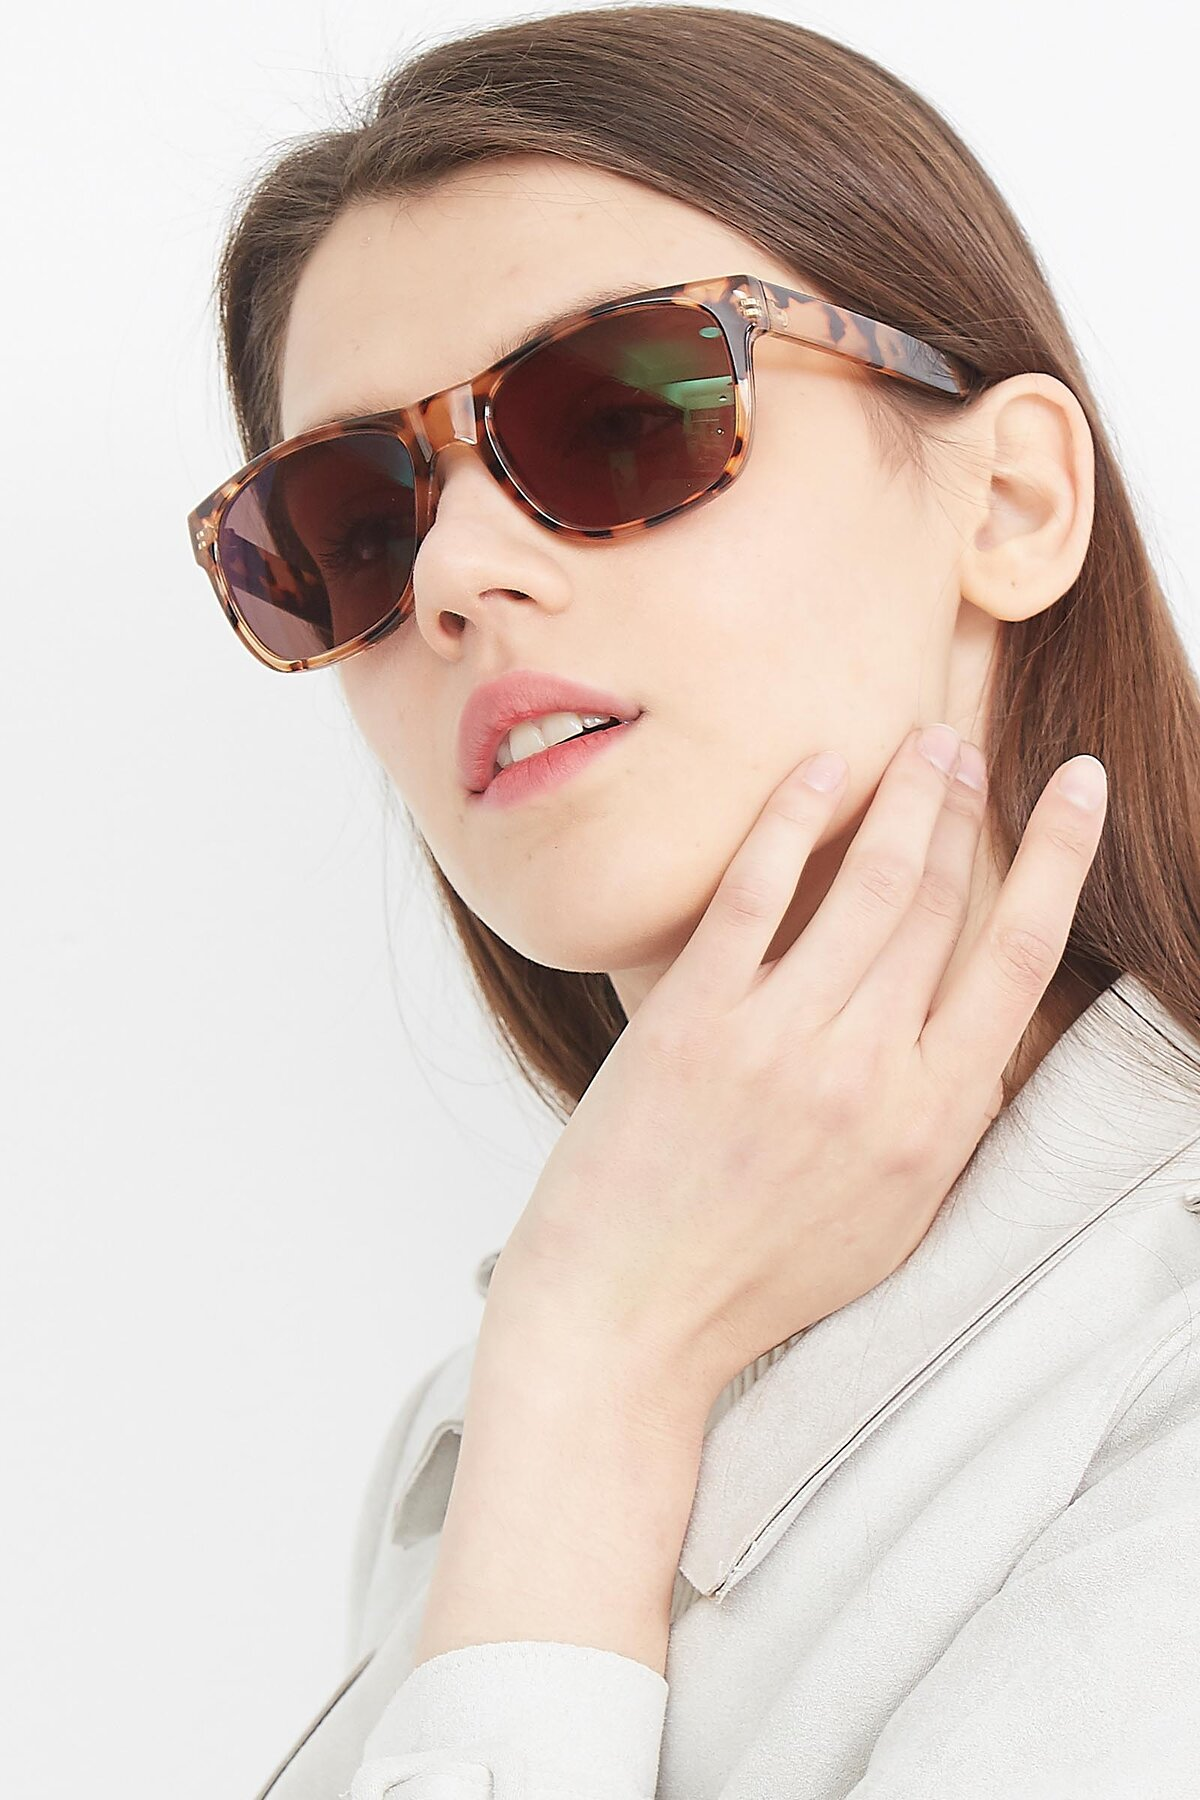 Women's lifestyle photography (portrait-2) of SSR213 in Translucent Tortoise with Brown Tinted Lenses